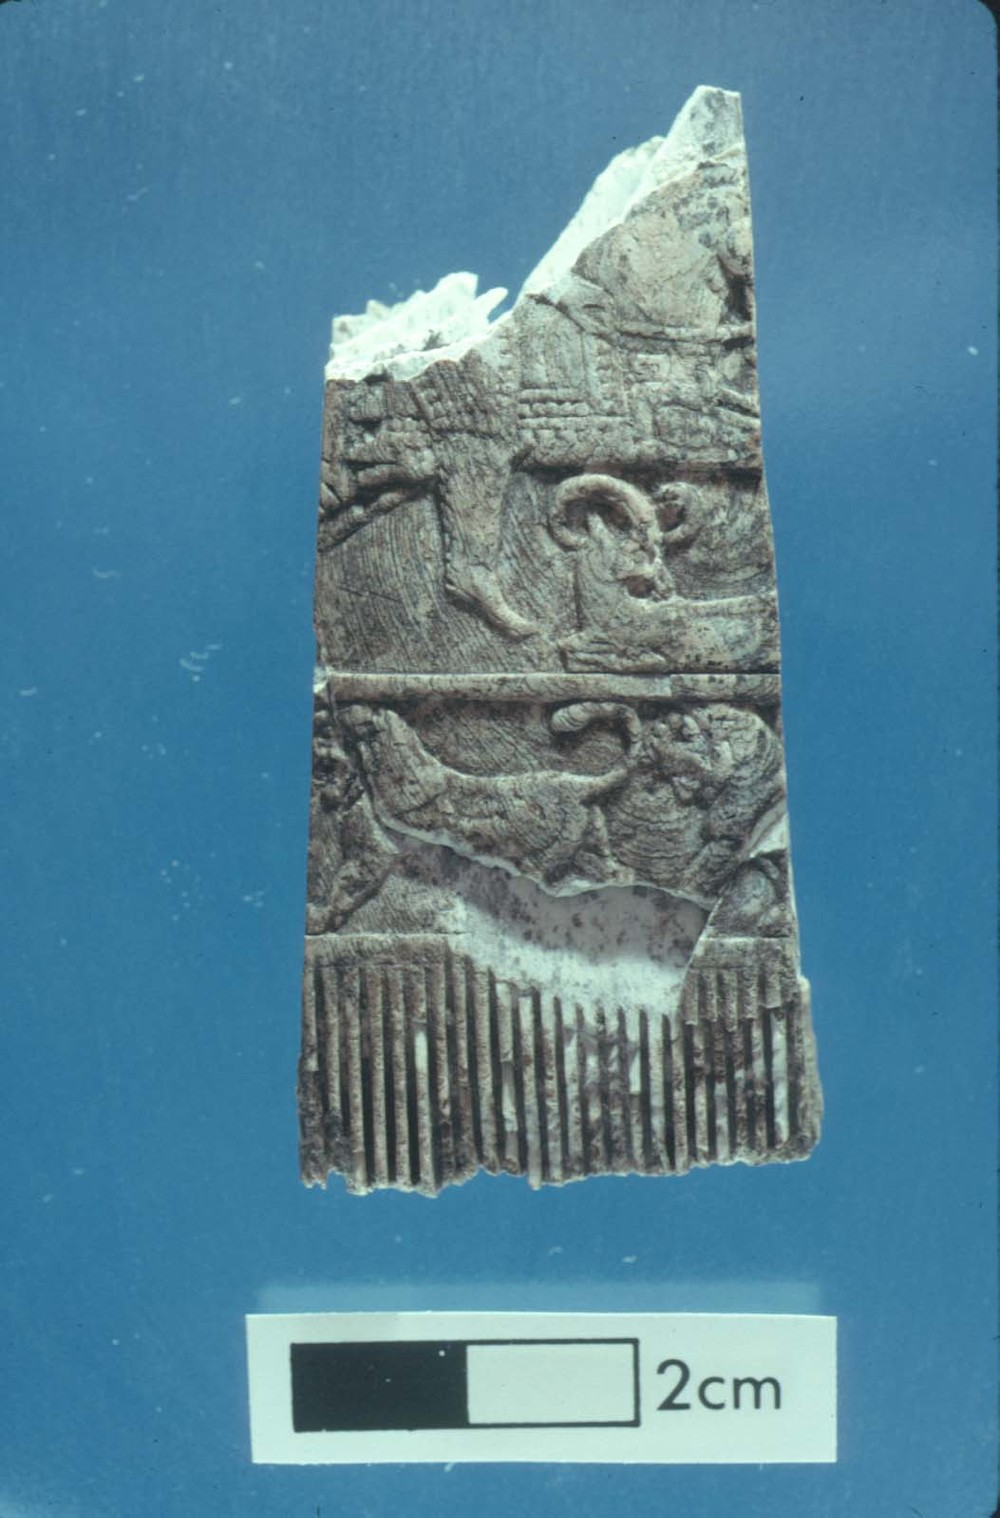 Ivory comb depicting a hunter on horseback.